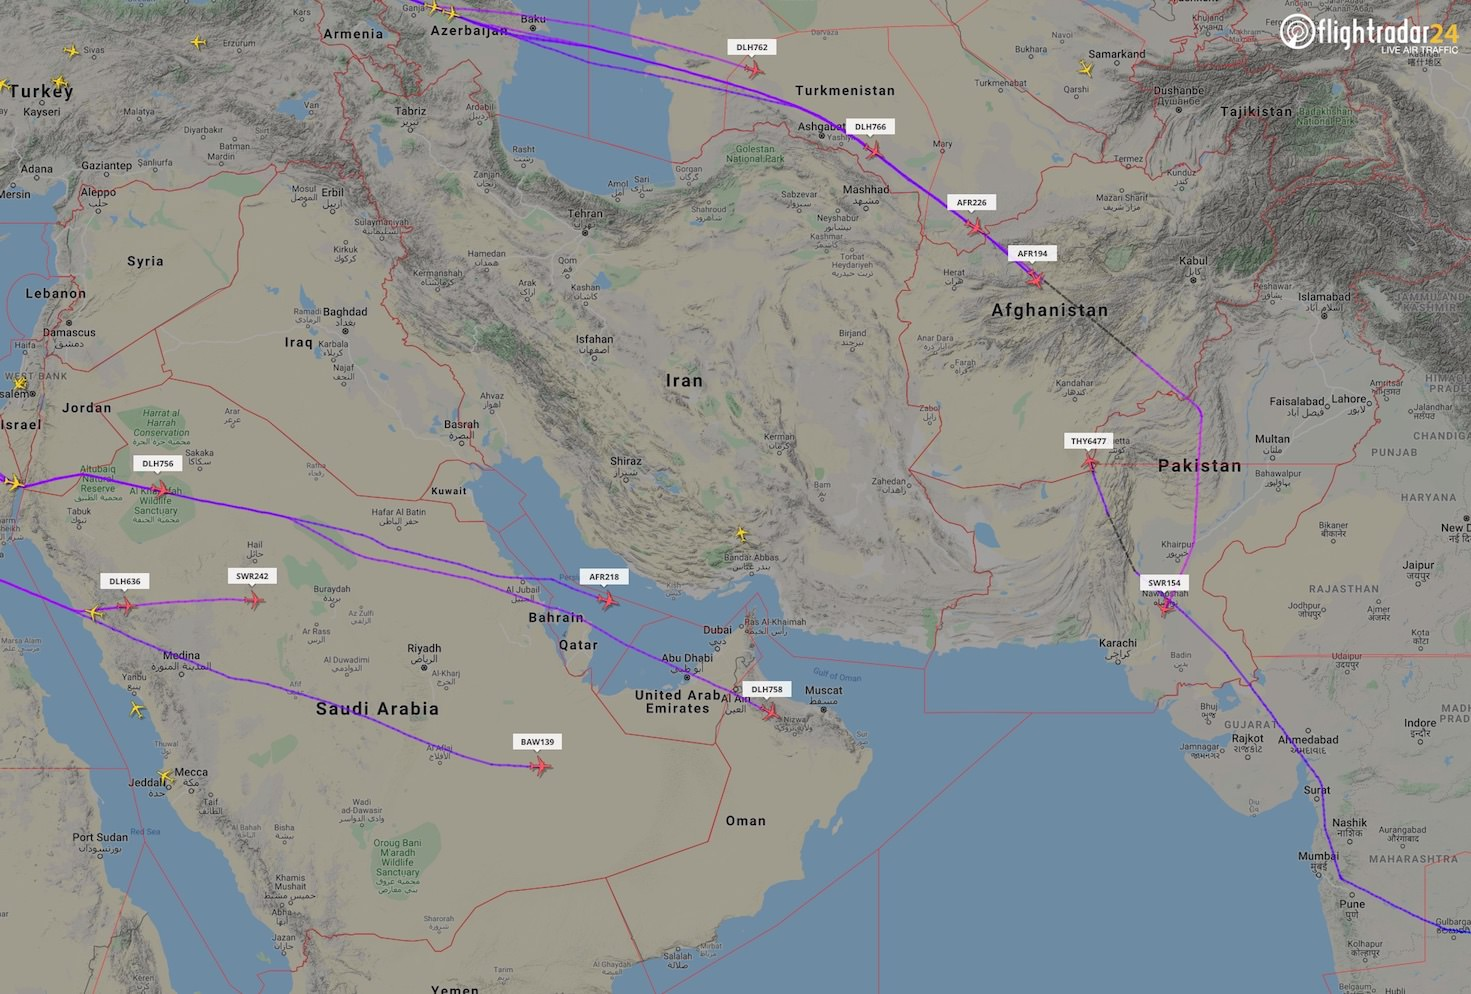 Examples of revised flight paths by European airlines avoiding Iran and Iraq.